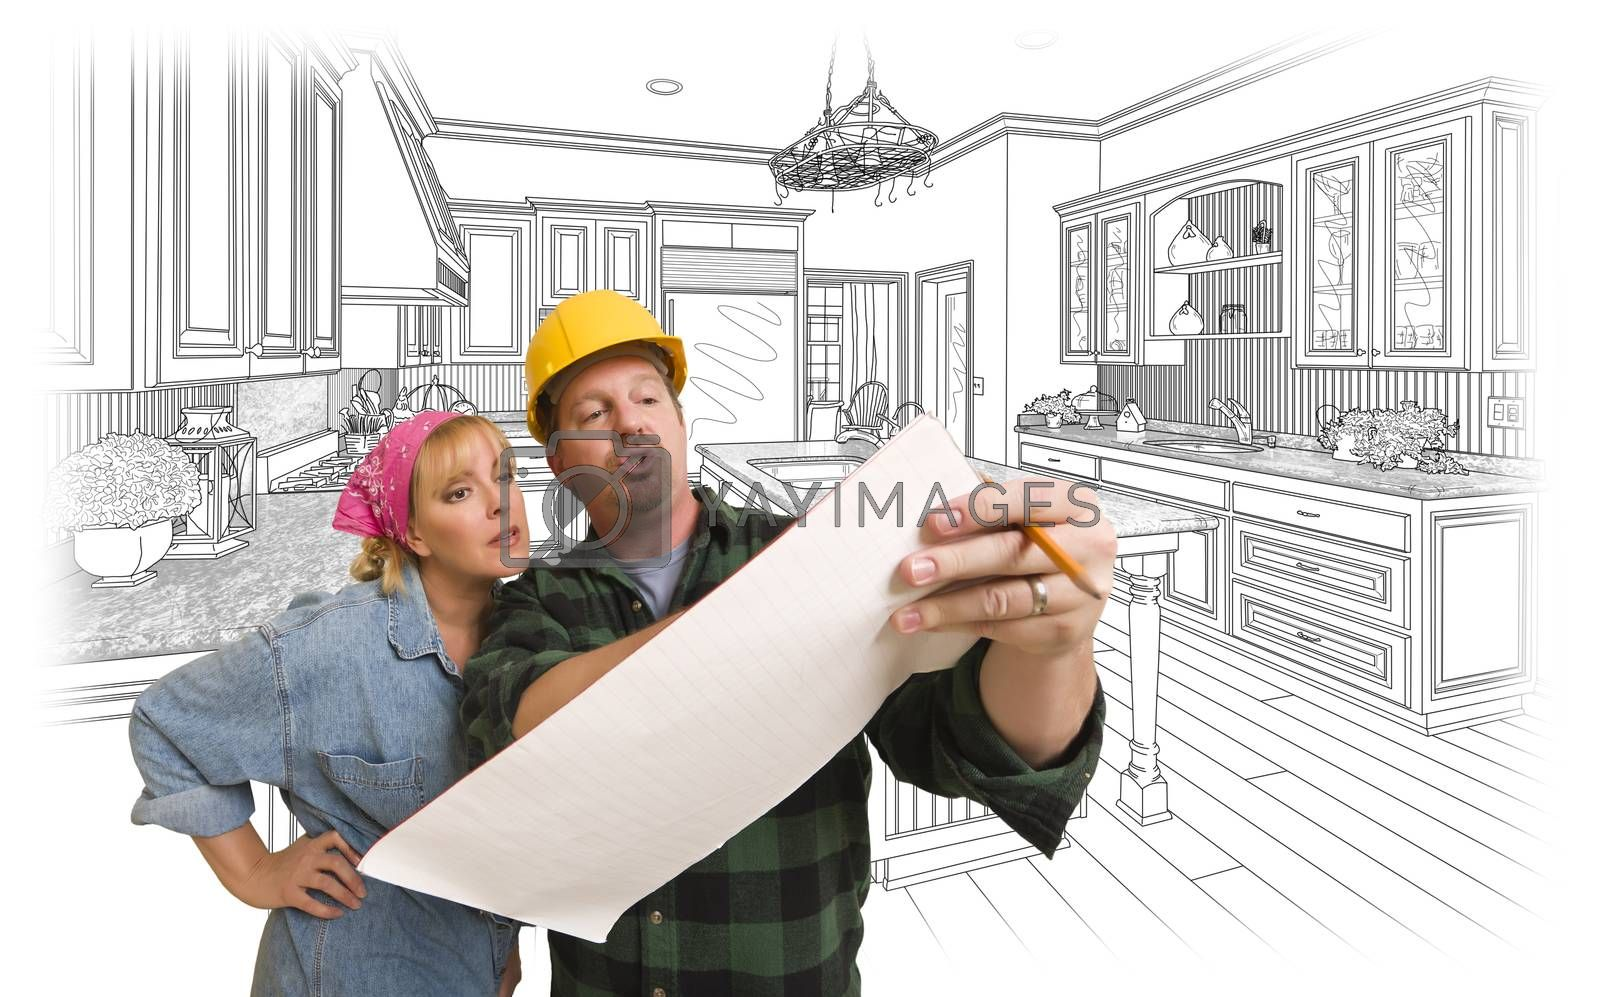 Royalty free image of Contractor Discussing Plans with Woman, Kitchen Drawing Behind by Feverpitched